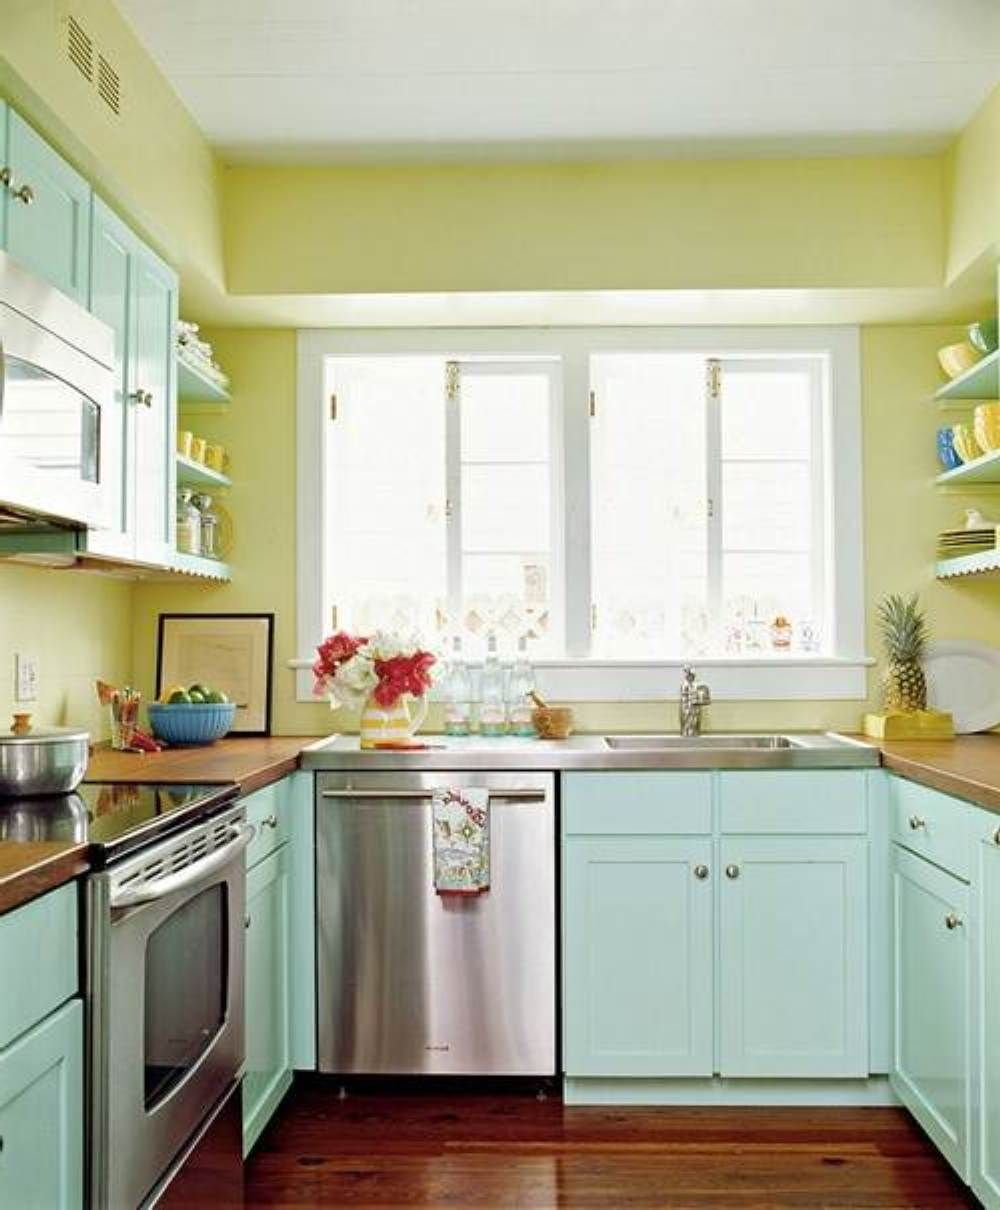 Home Design Ideas Colors: Small Kitchen Design Ideas